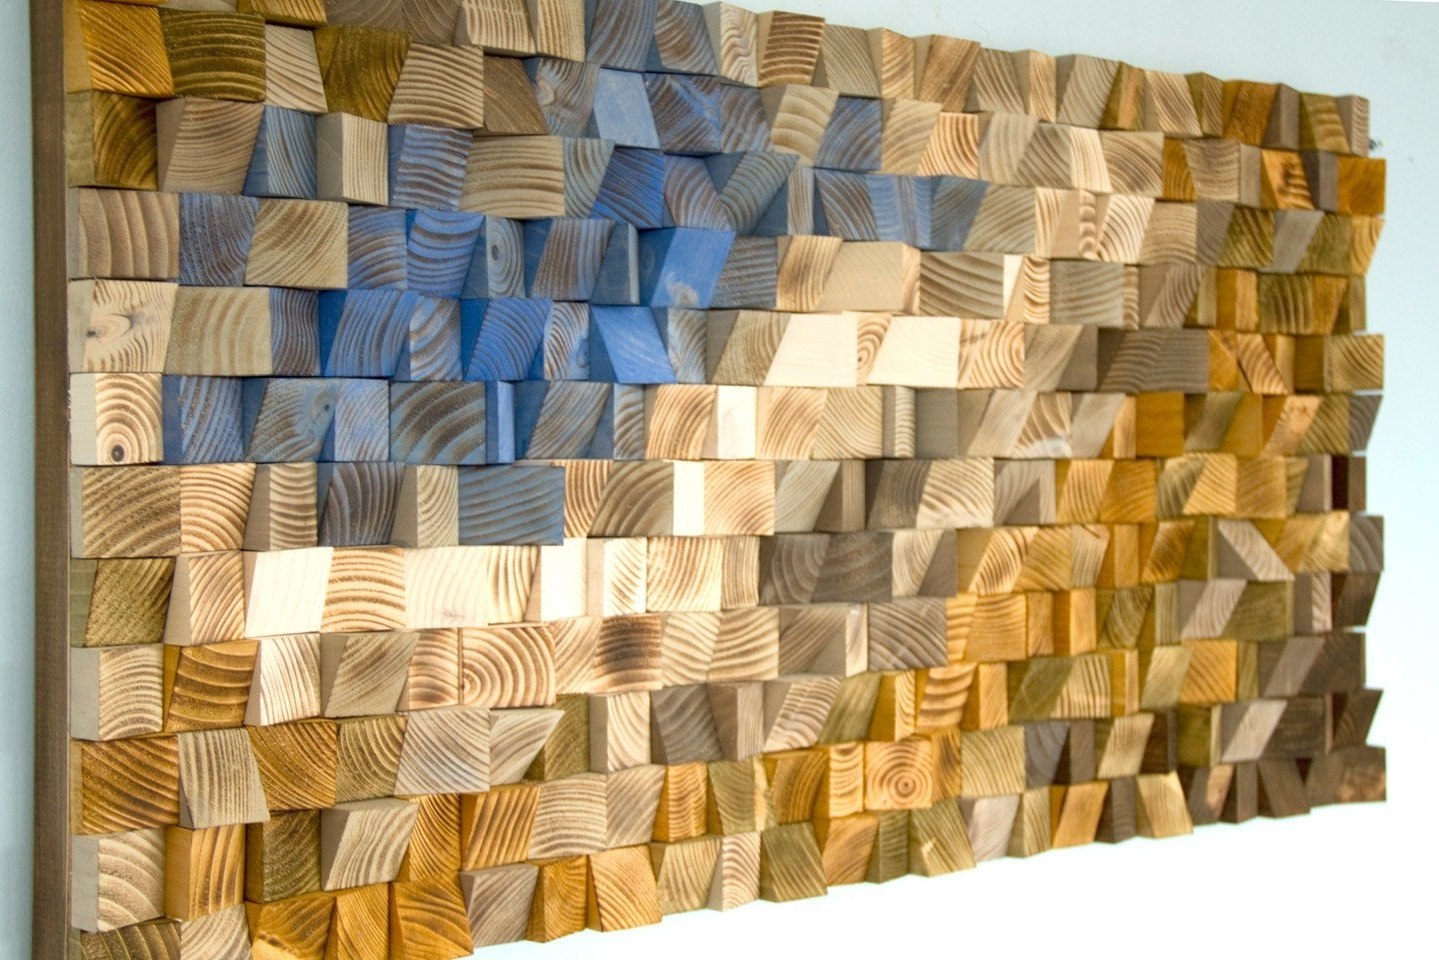 Most Popular Reclaimed Wood Wall Art, Wood Mosaic, Geometric Art, Wood Wall Art Intended For Reclaimed Wood Wall Art (View 3 of 15)